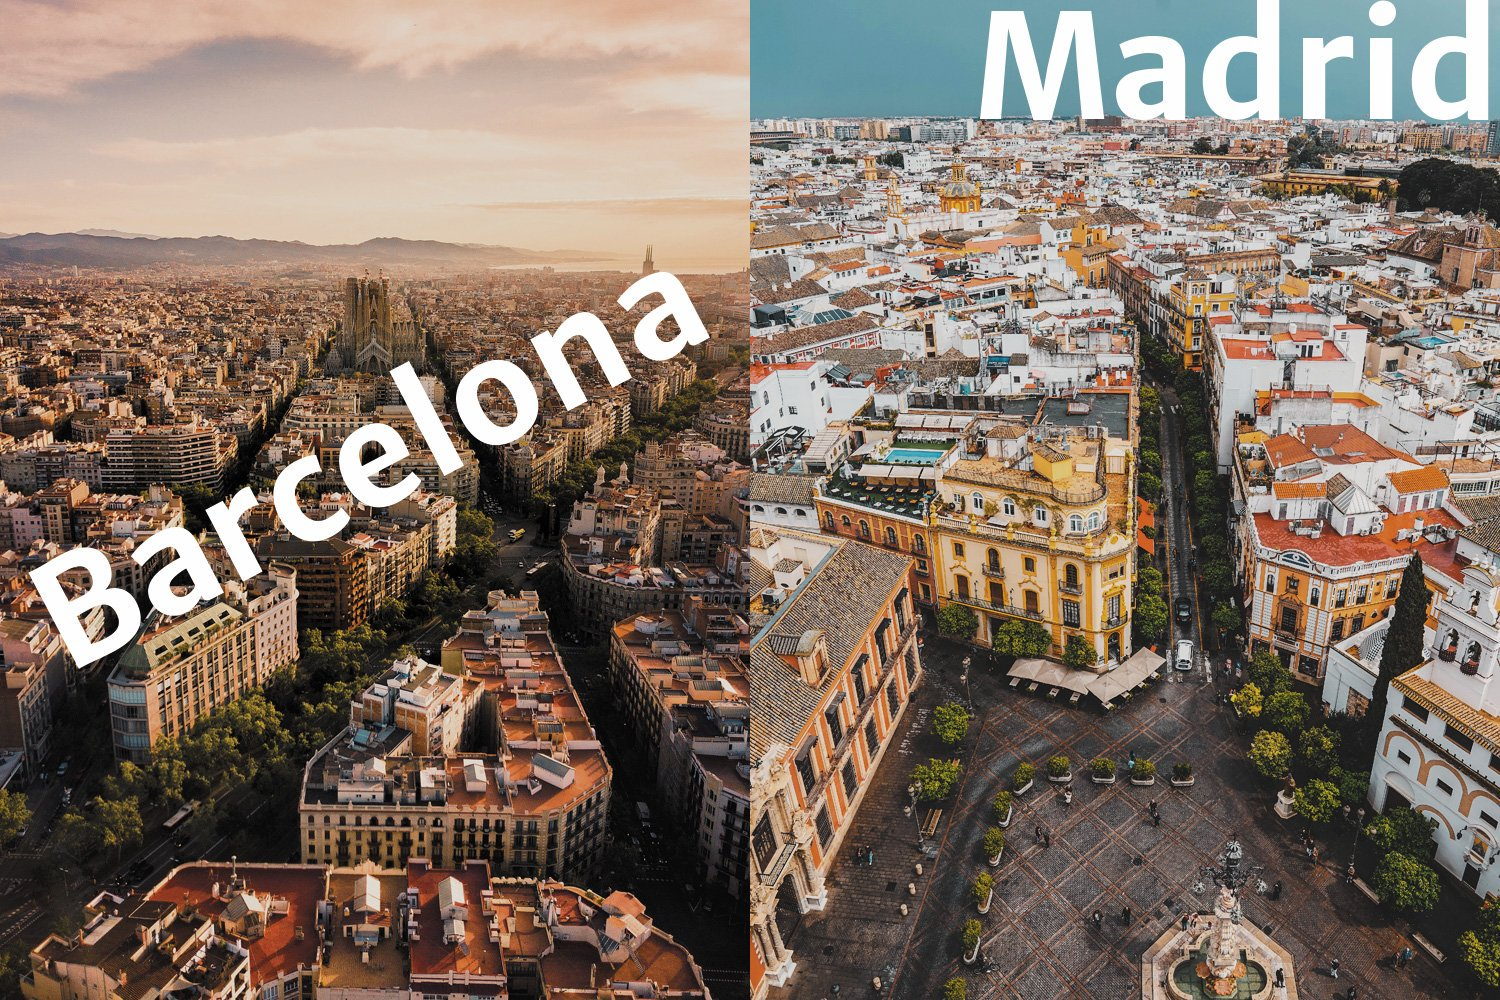 What is your favorite city in Spain?  - Retweet for Barcelona - Like for Madrid  #Spain #travel #Madrid #Barcelona https://t.co/6UjJPSRlxU